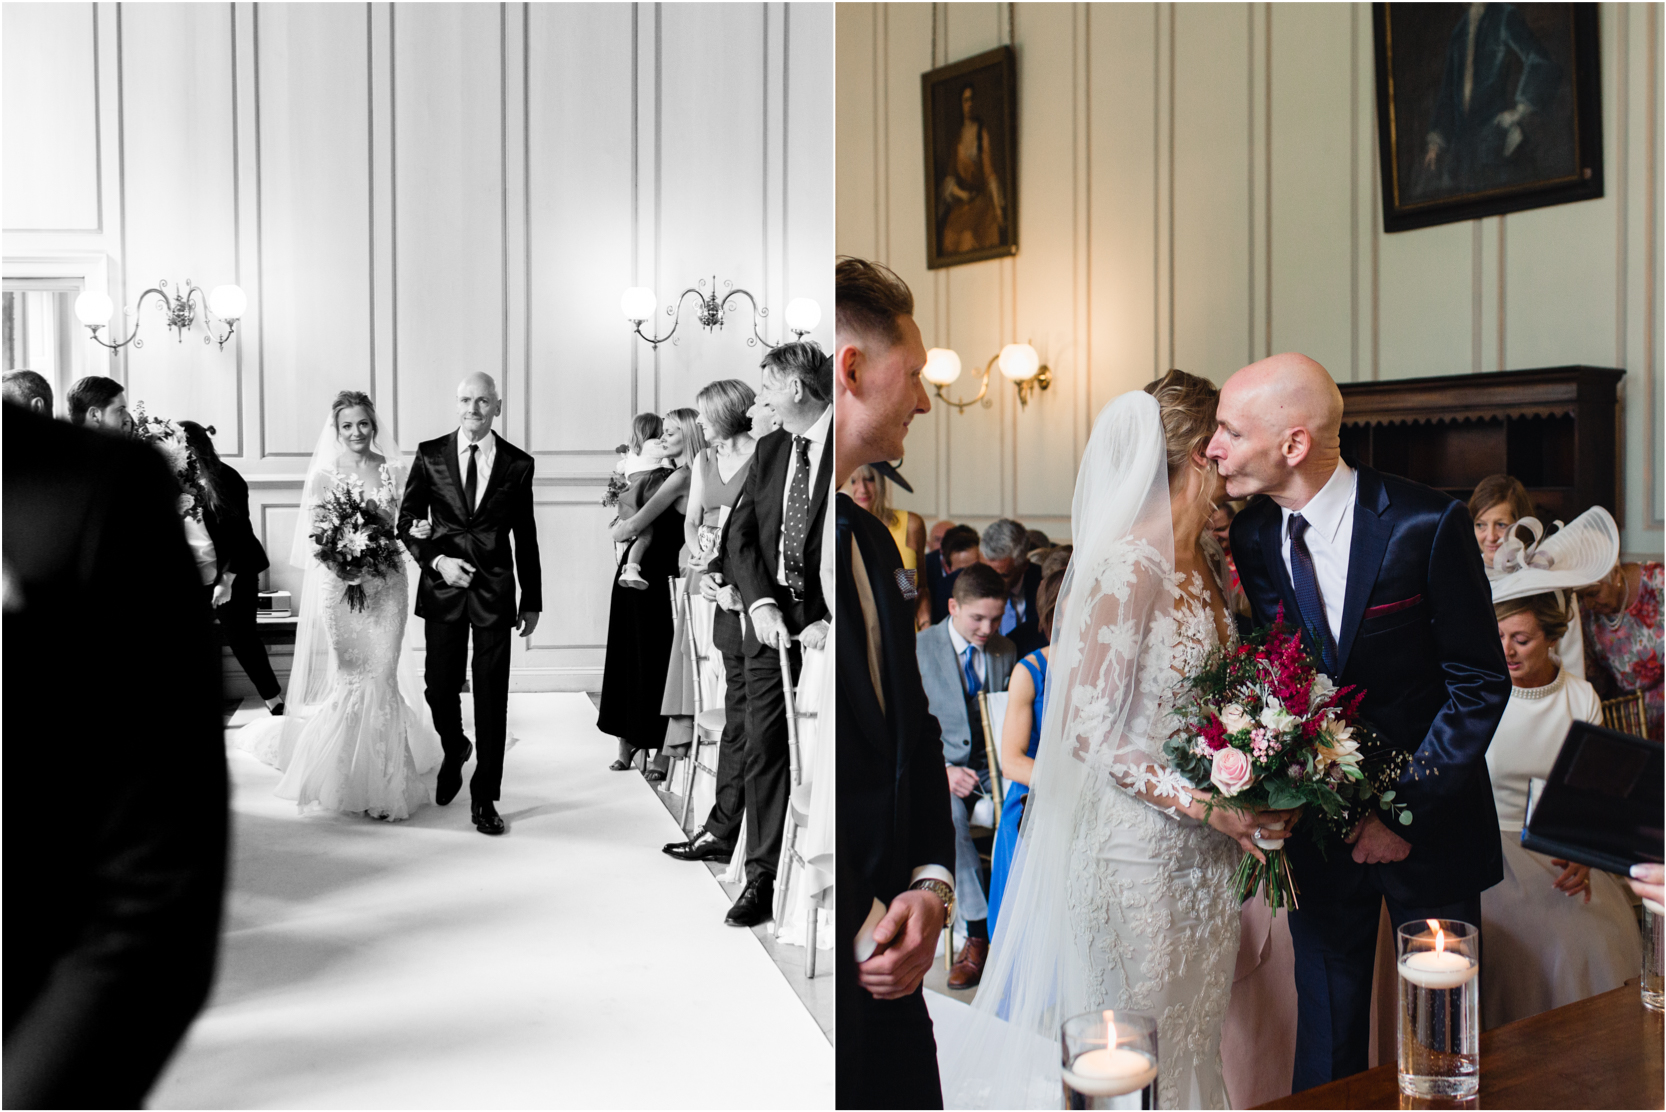 Gosfield Hall Wedding Photography Surrey Luxury Photographer 43.jpg